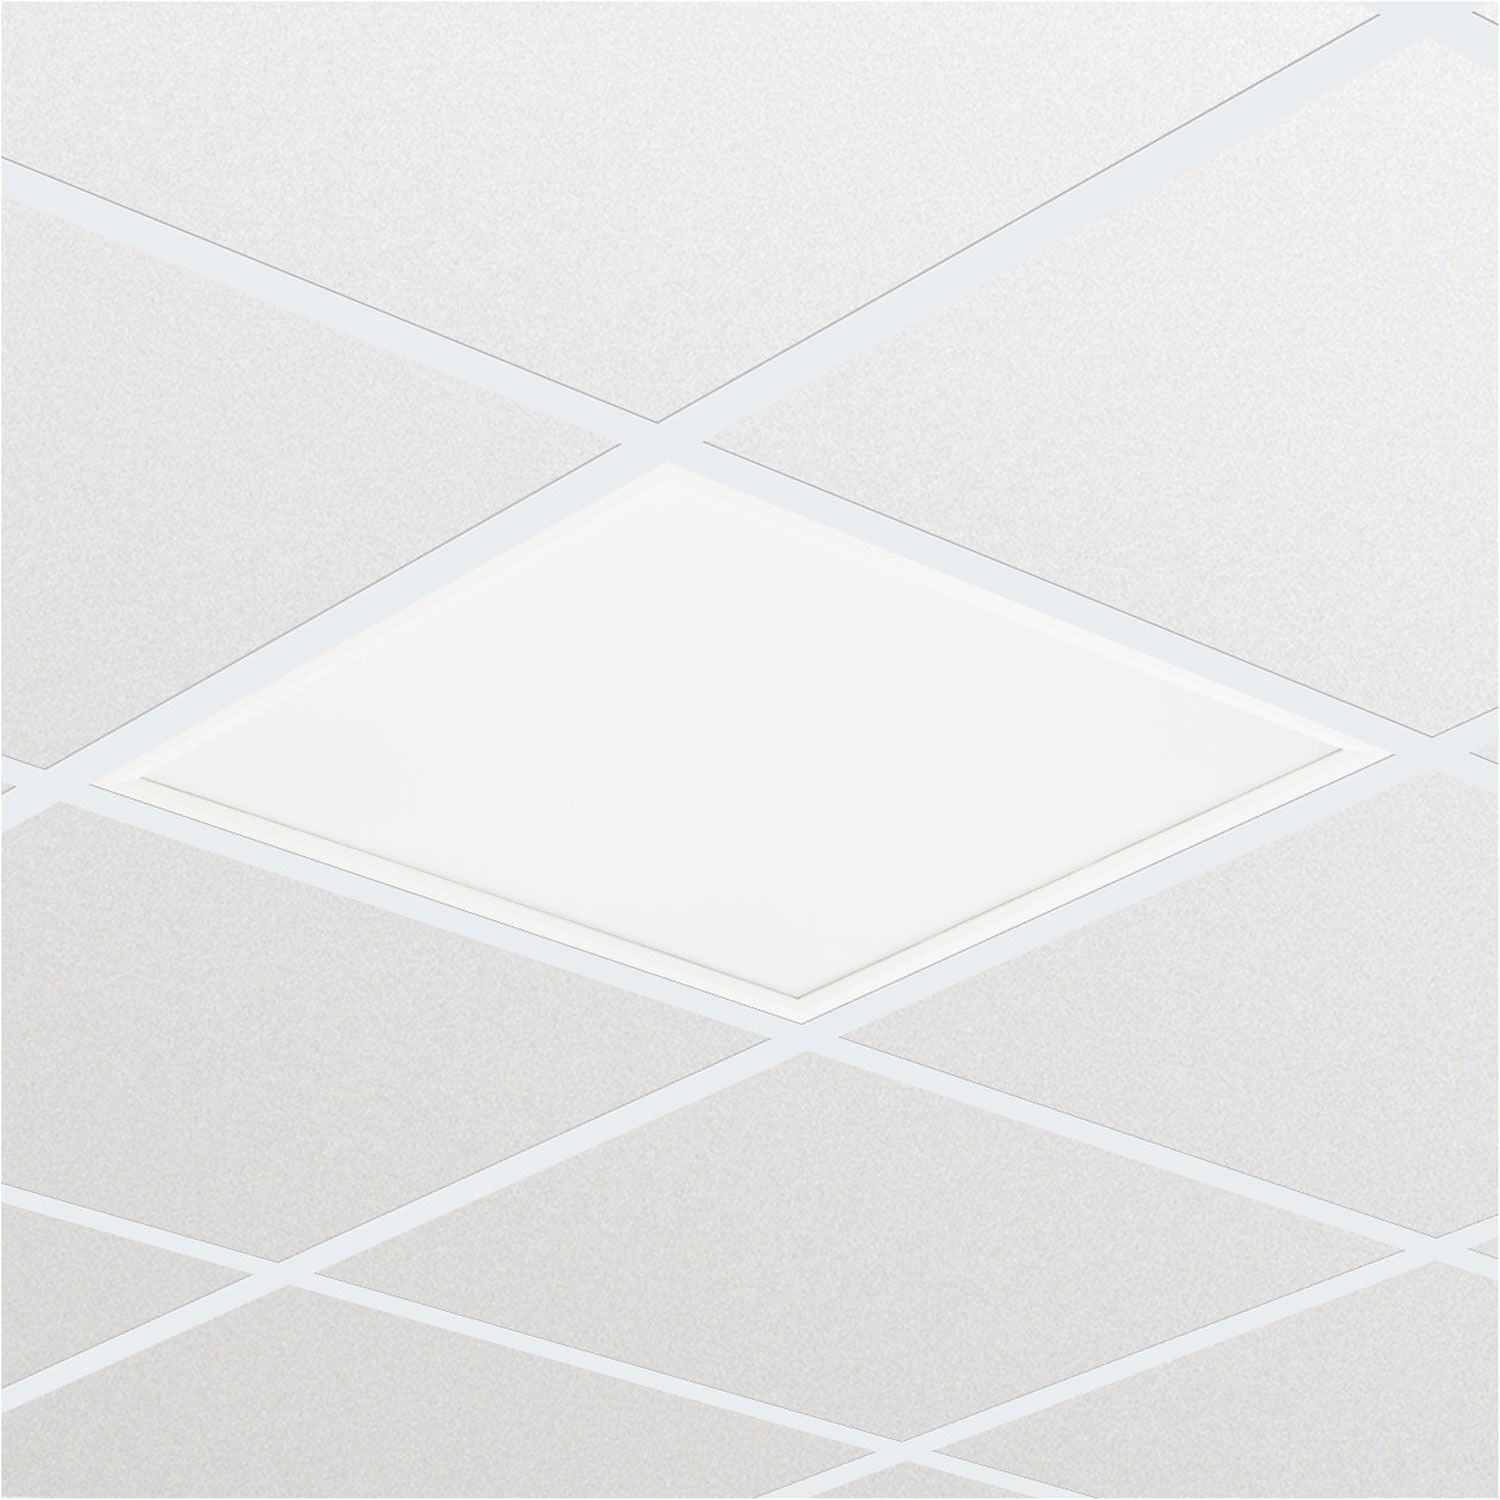 Philips LED Panel CoreLine RC132V G4 60x60cm 4000K 3600lm UGR <19 | Dali Dimmable - Replacer for 4x18W